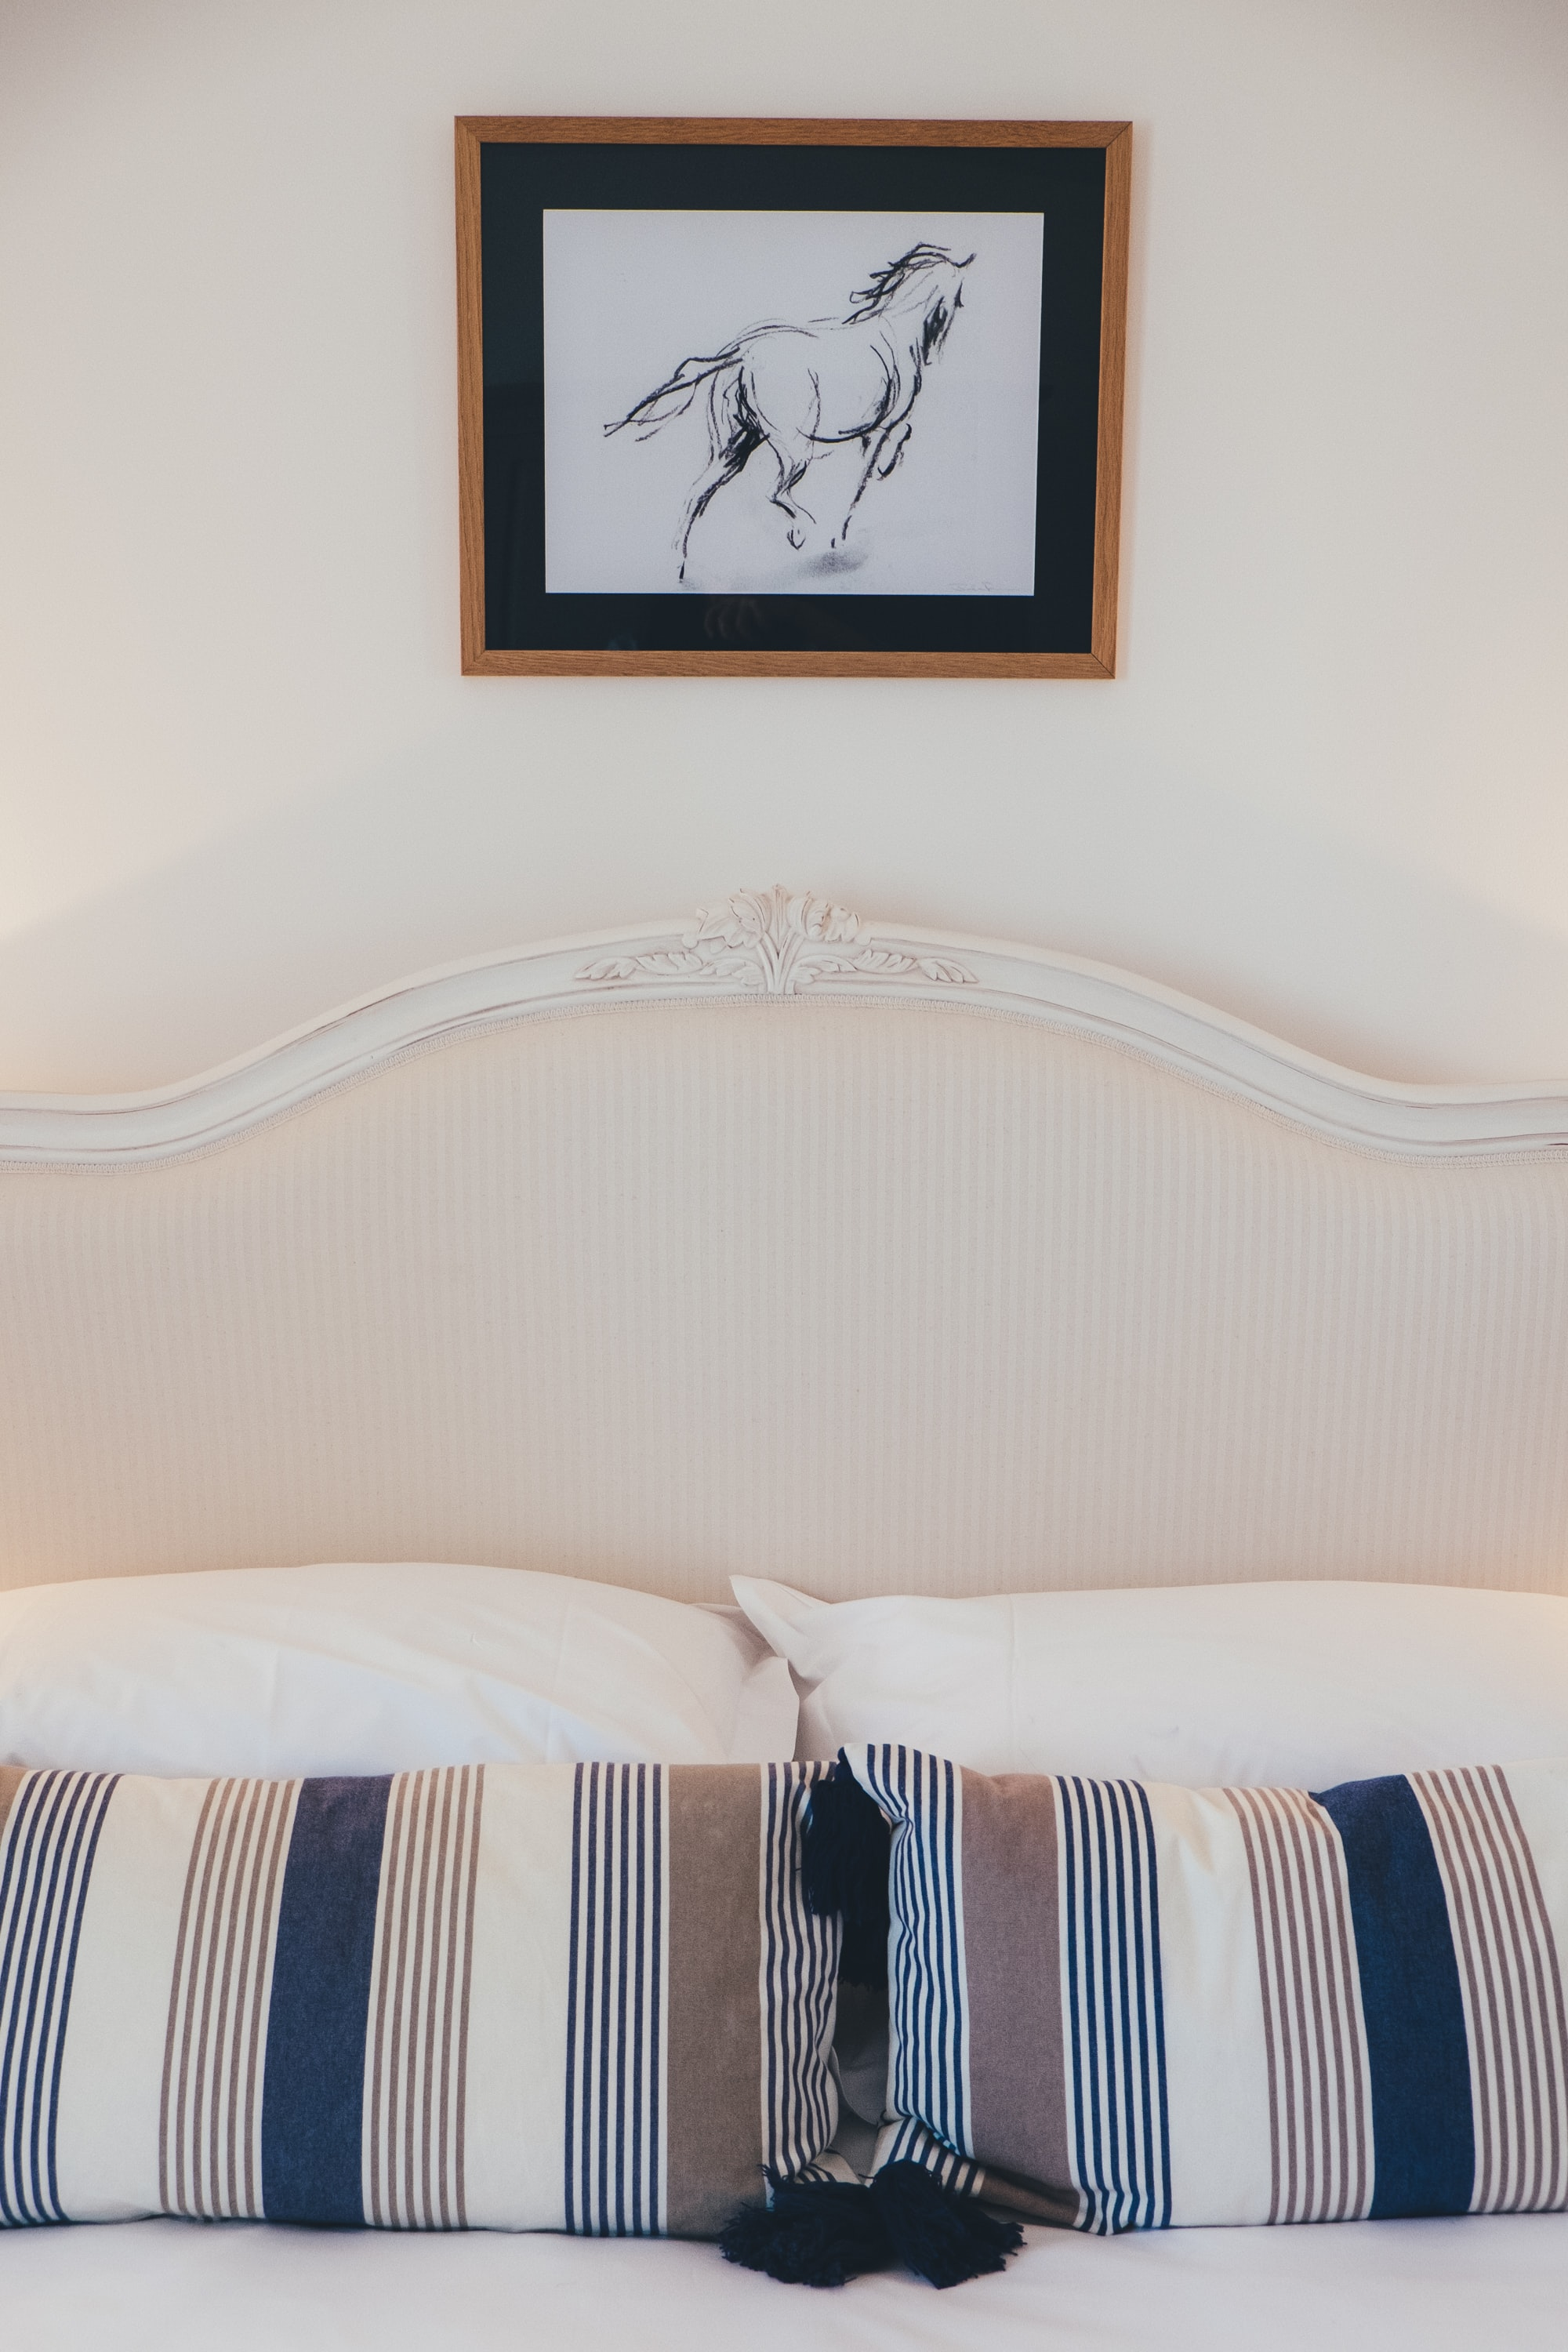 A framed sketch of a running horse hangs on the wall above a double bed